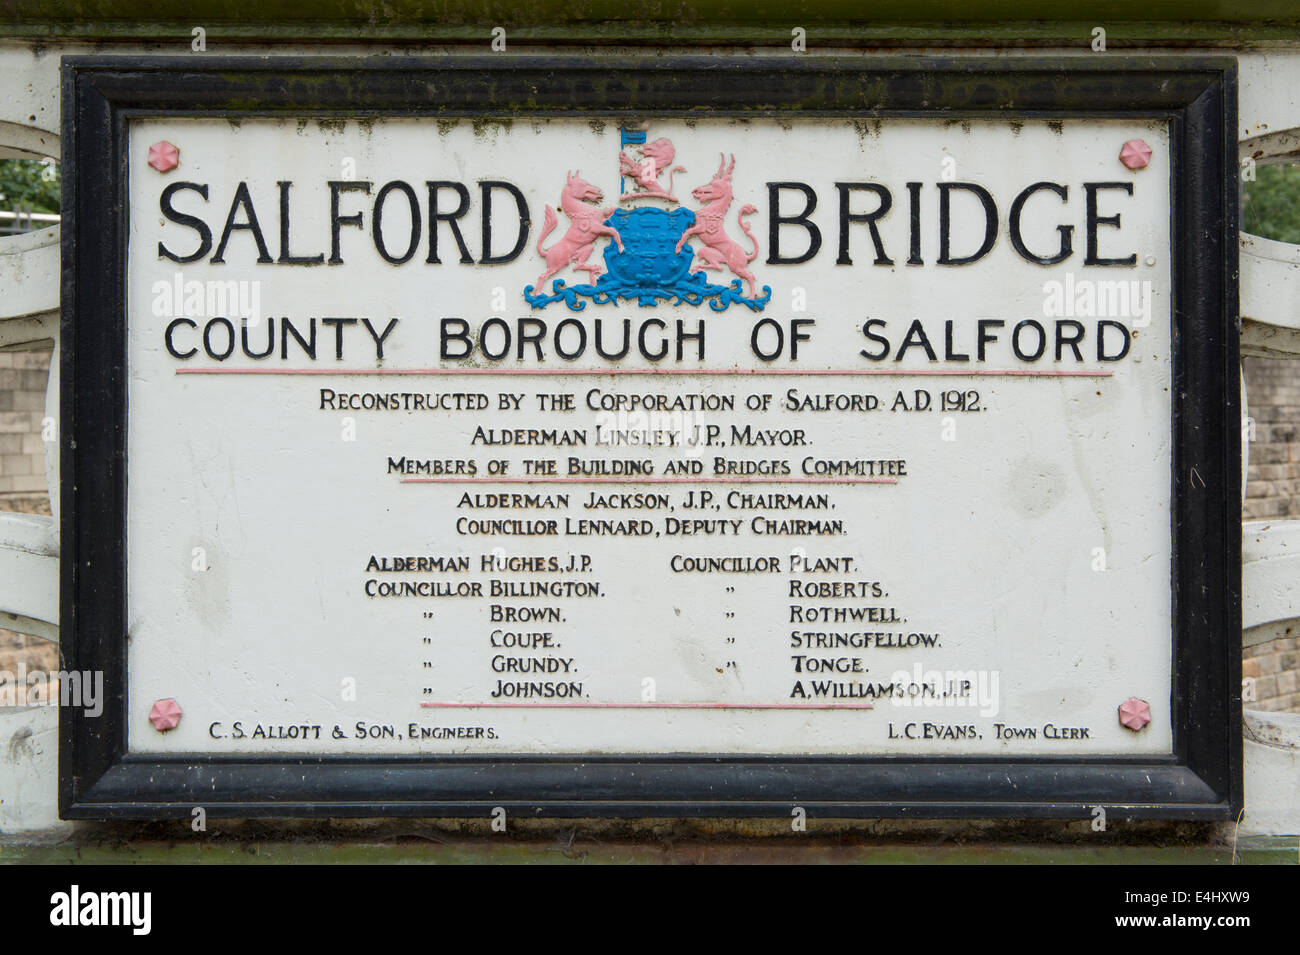 Plaque marking reconstruction of Salford /Palatine Bridge / Cathedral Approach passing over River Irwell / Manchester - Stock Image